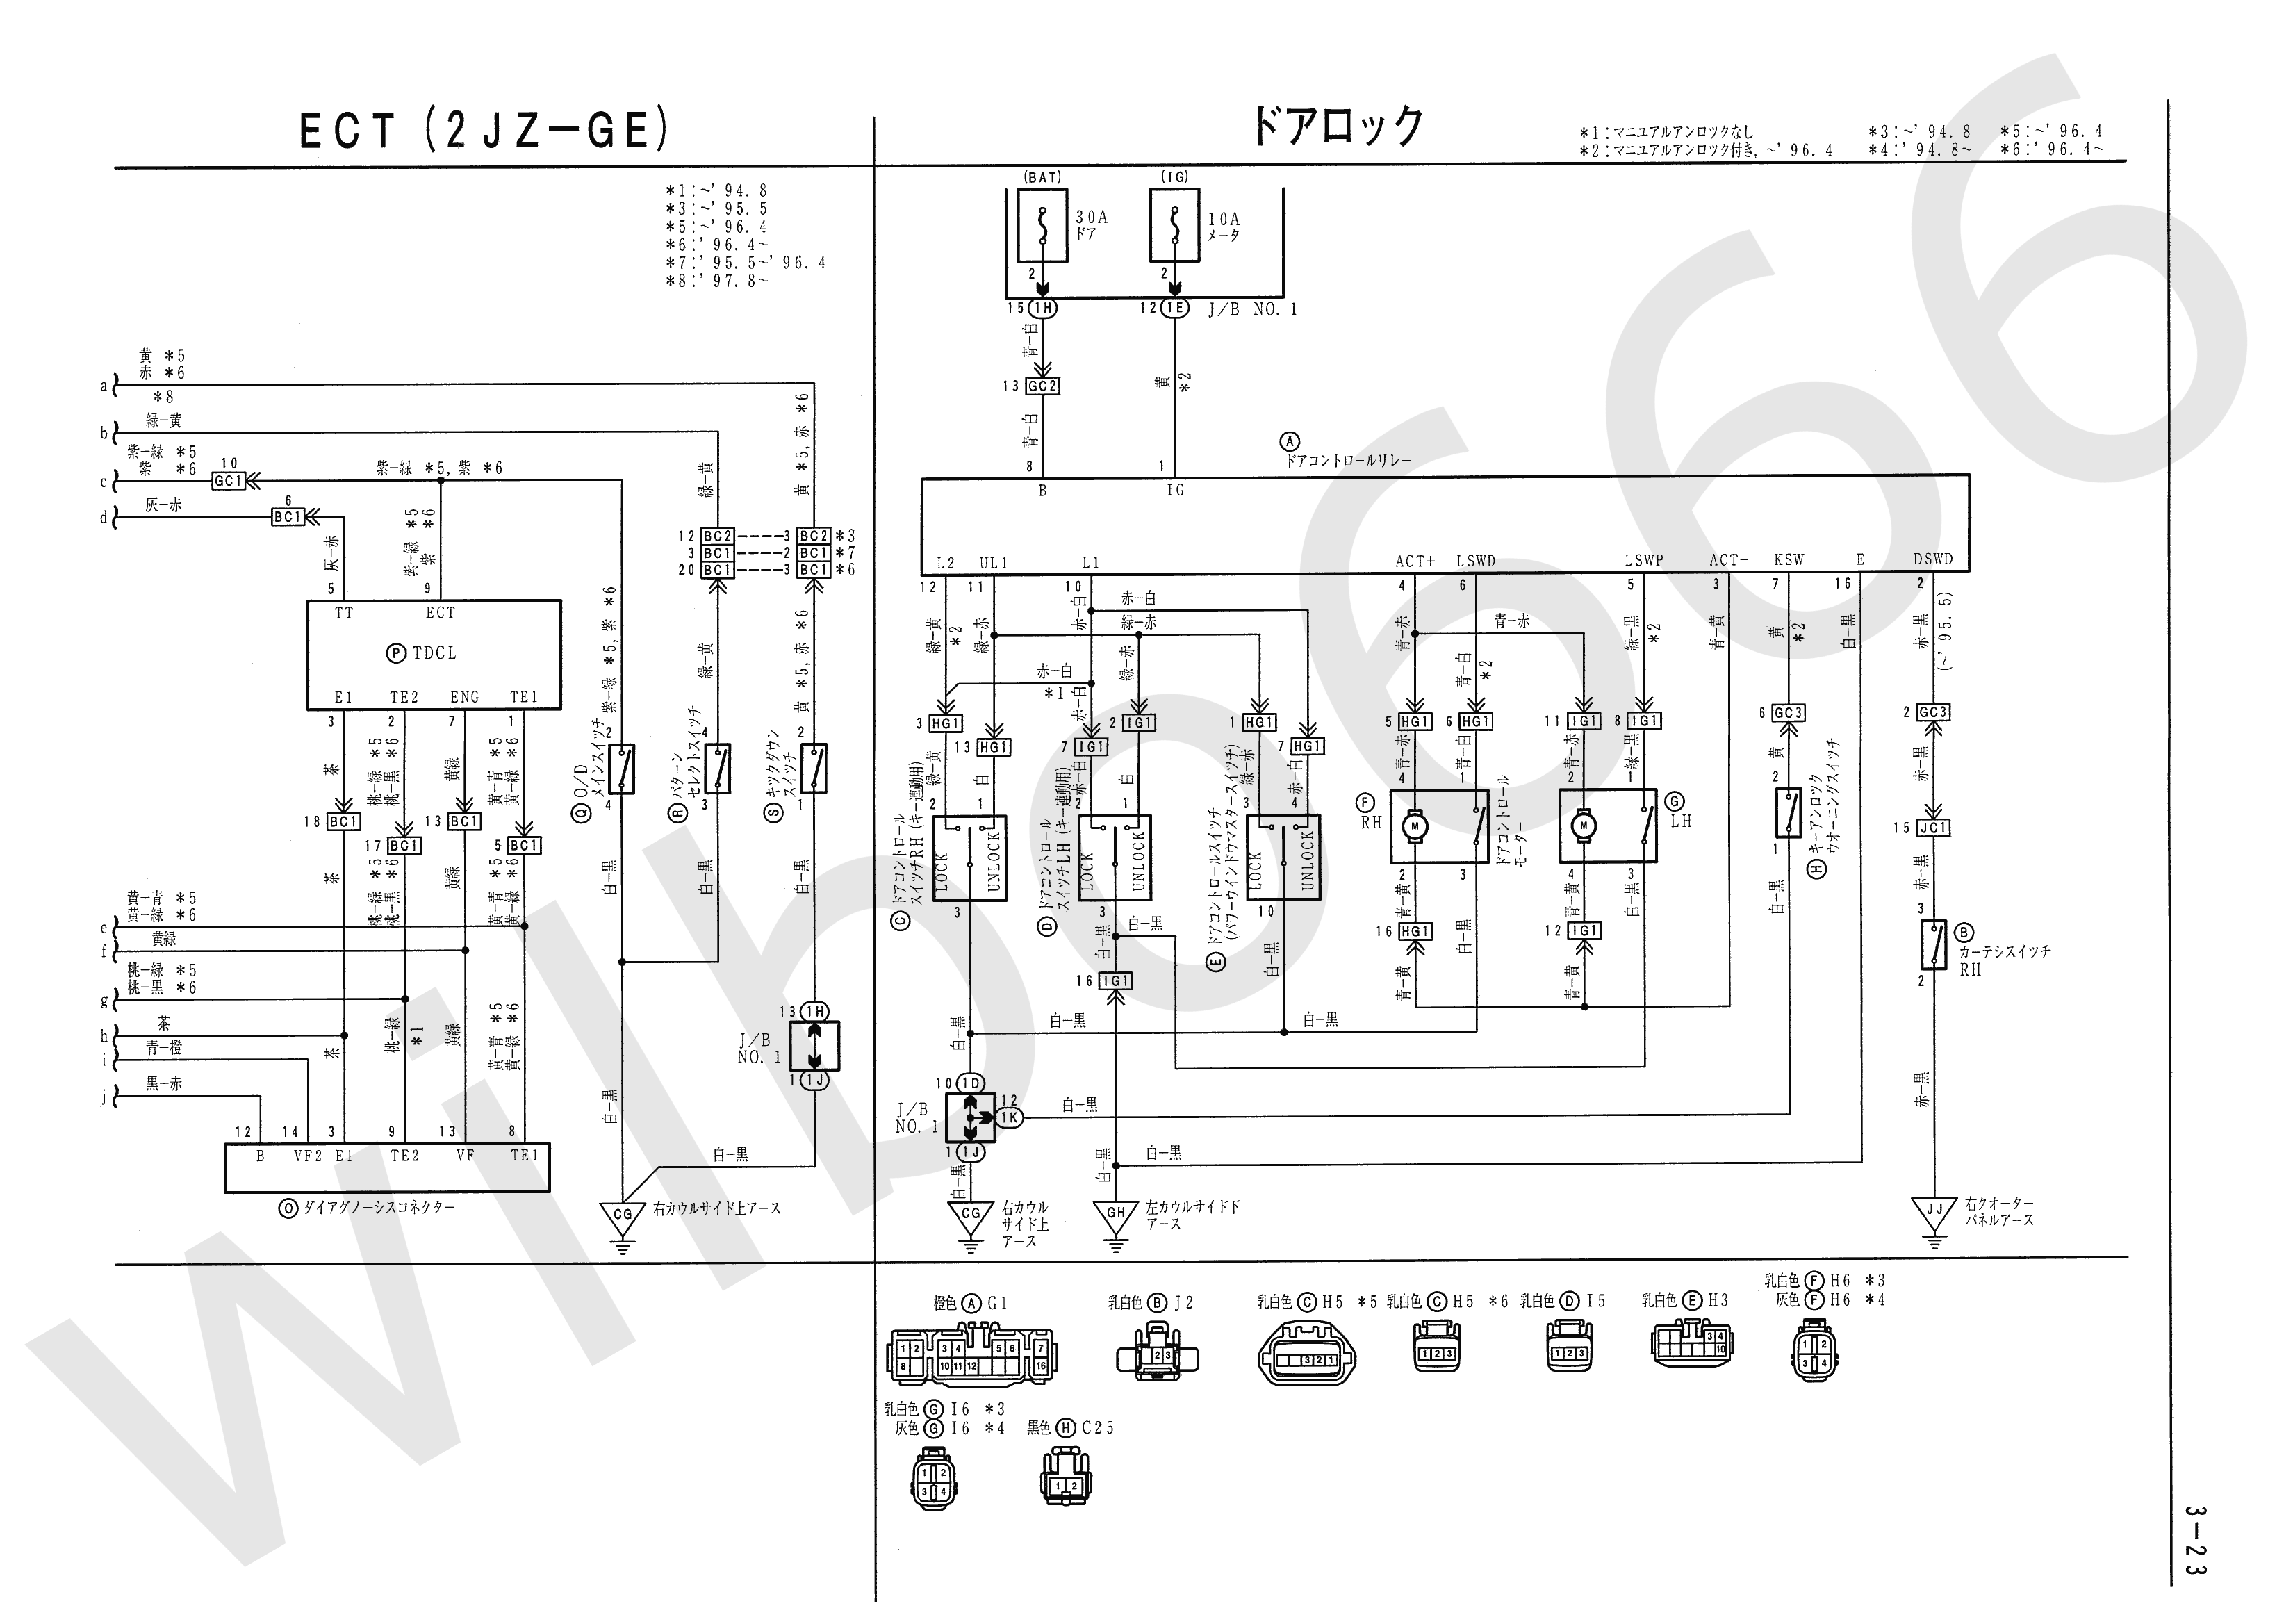 roketa 250cc atv wiring diagram 31 wiring diagram images roketa 250cc dune  buggy wiring diagram roketa 250 atv wiring diagram